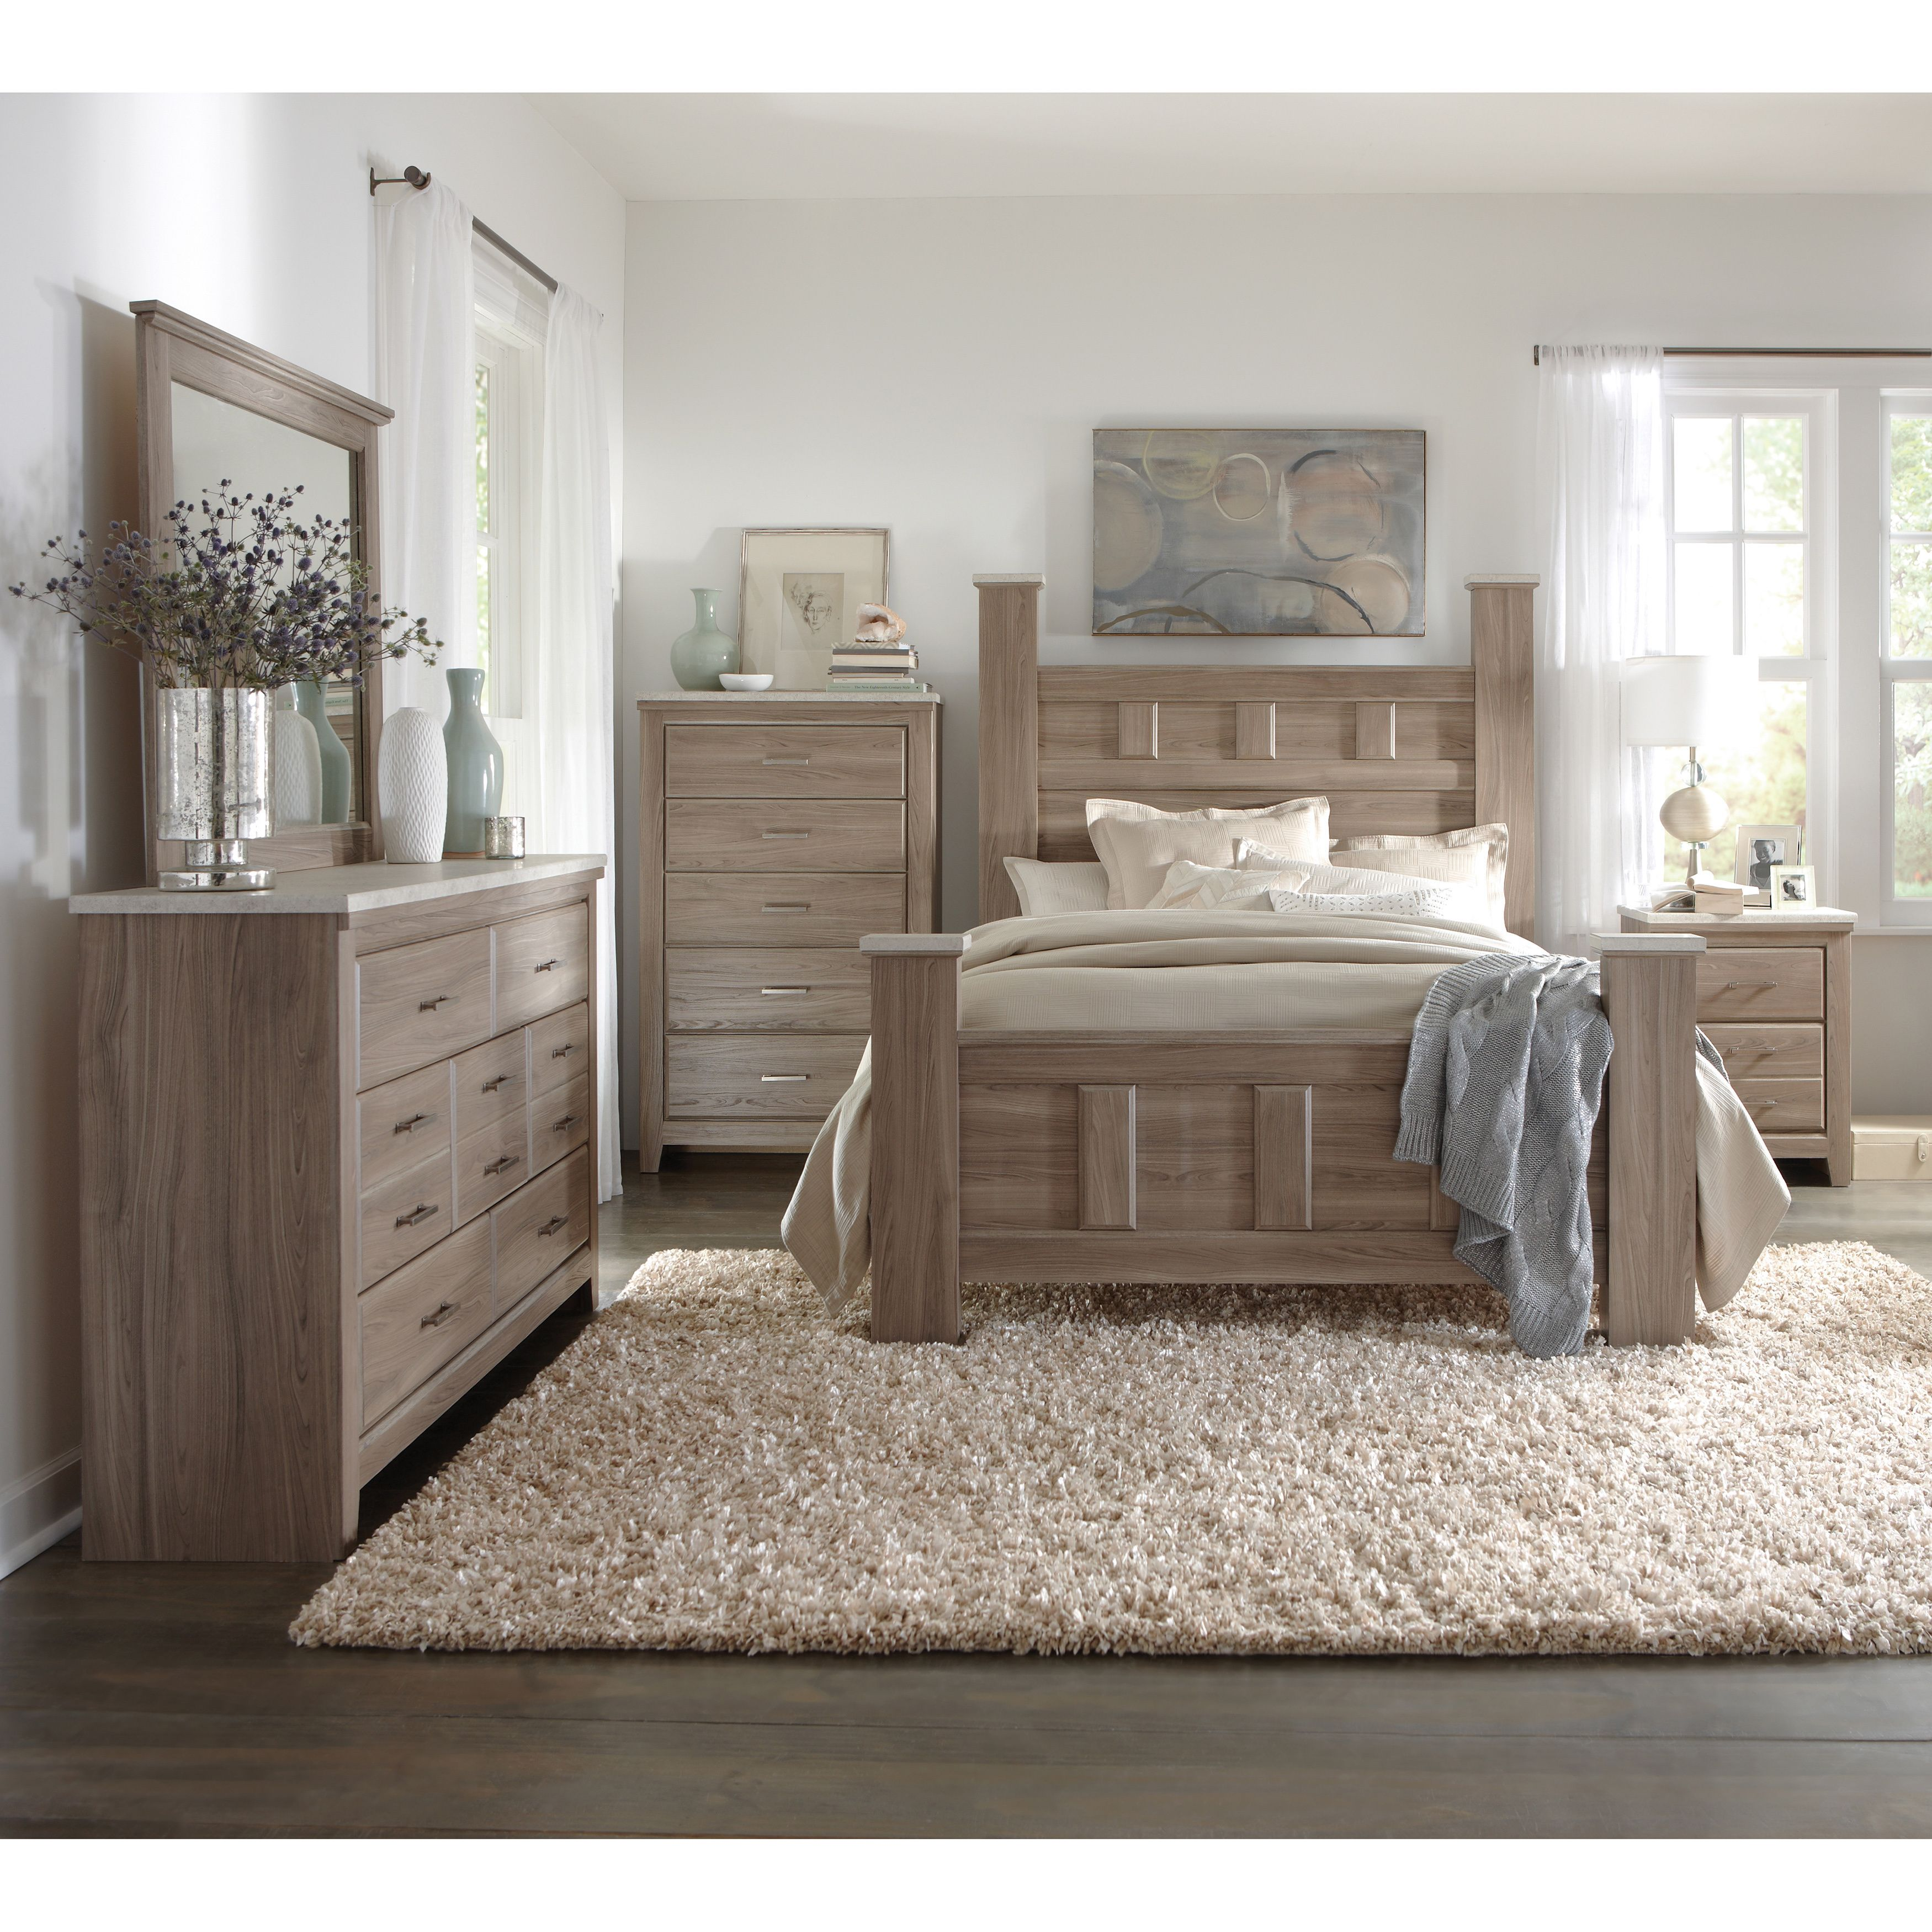 Excellent Wood Bedroom Sets Decor